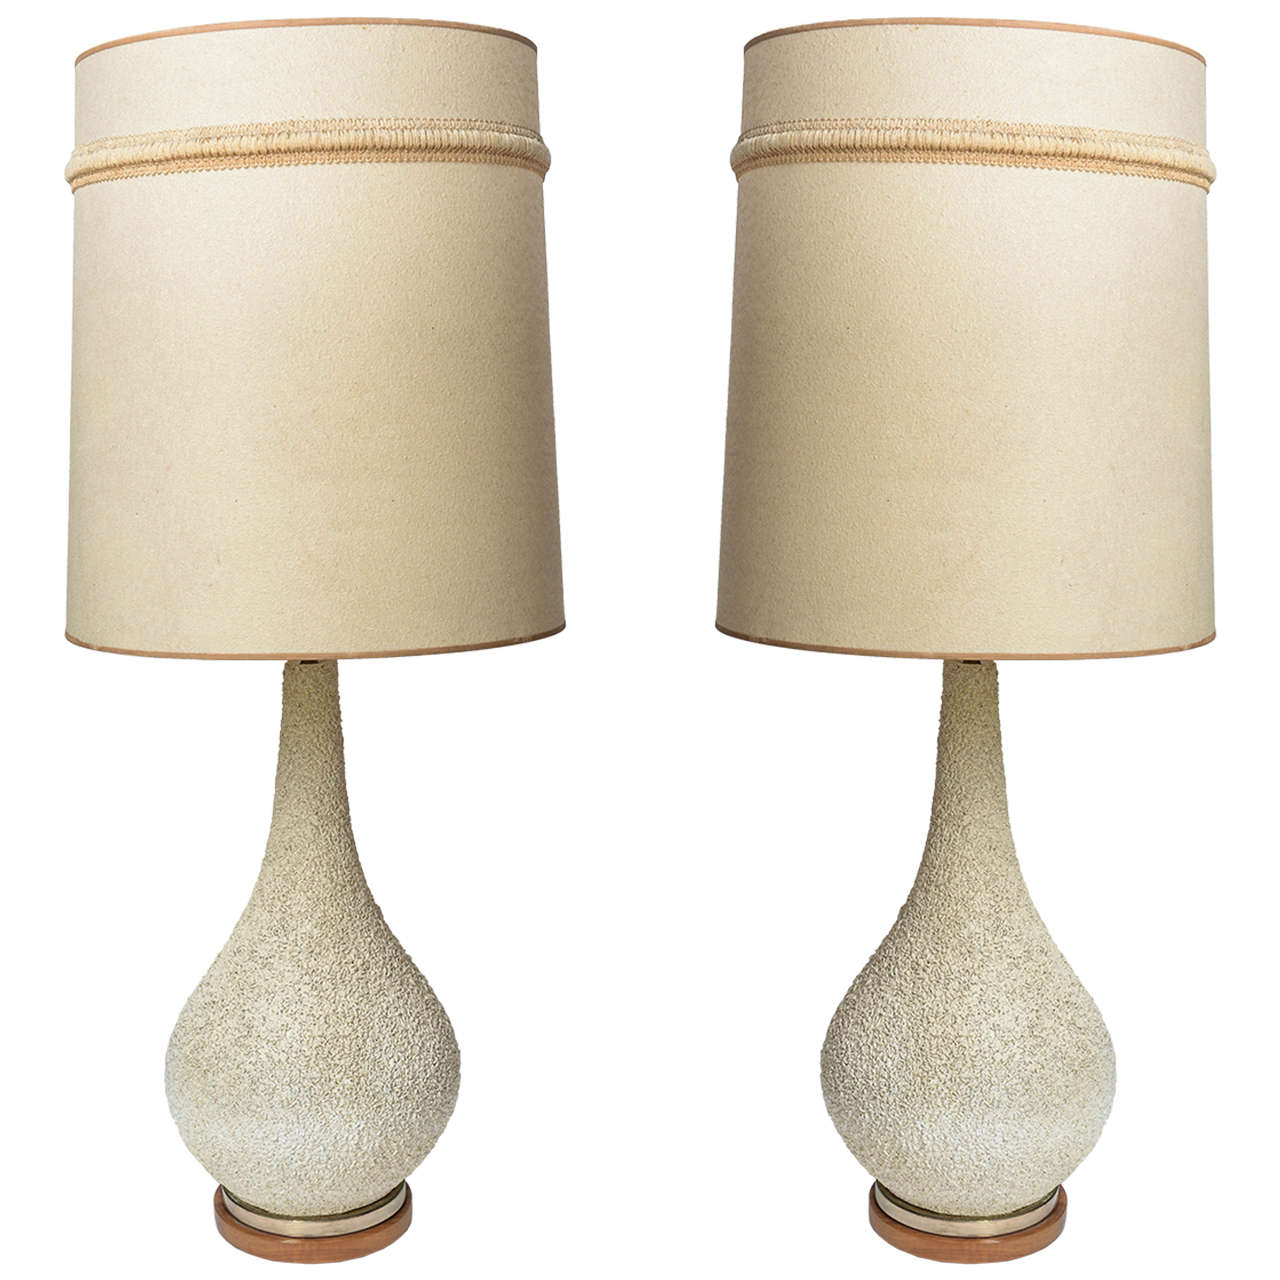 Tall Pair Of Mid Century Modern Danish Style Pottery Textured Lamps At 1stdibs